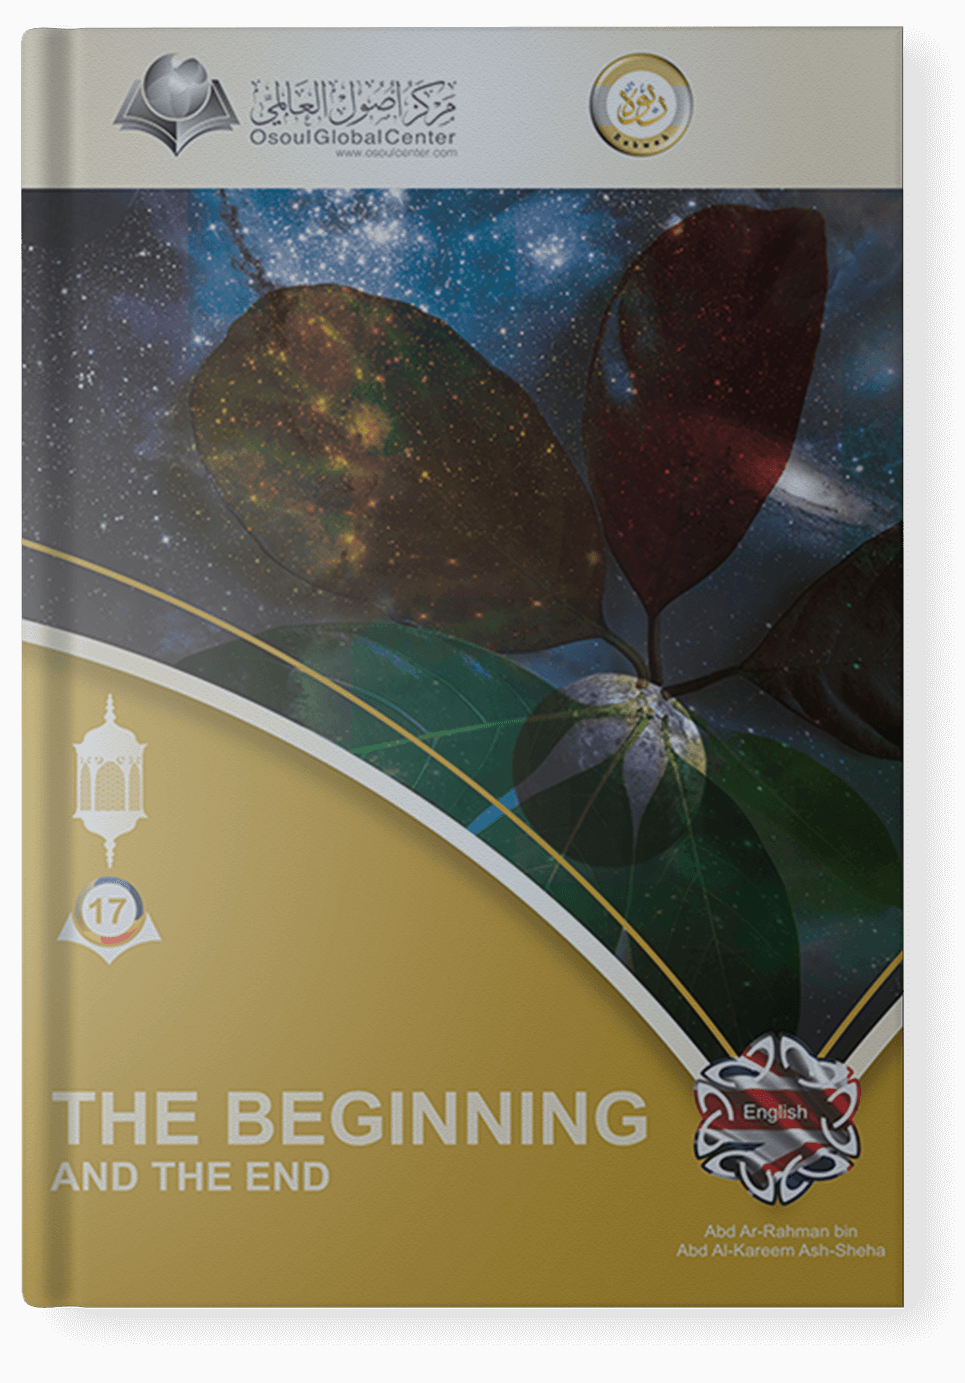 The Beginning and The End : Dr. Abdul Rahman Al-Sheha